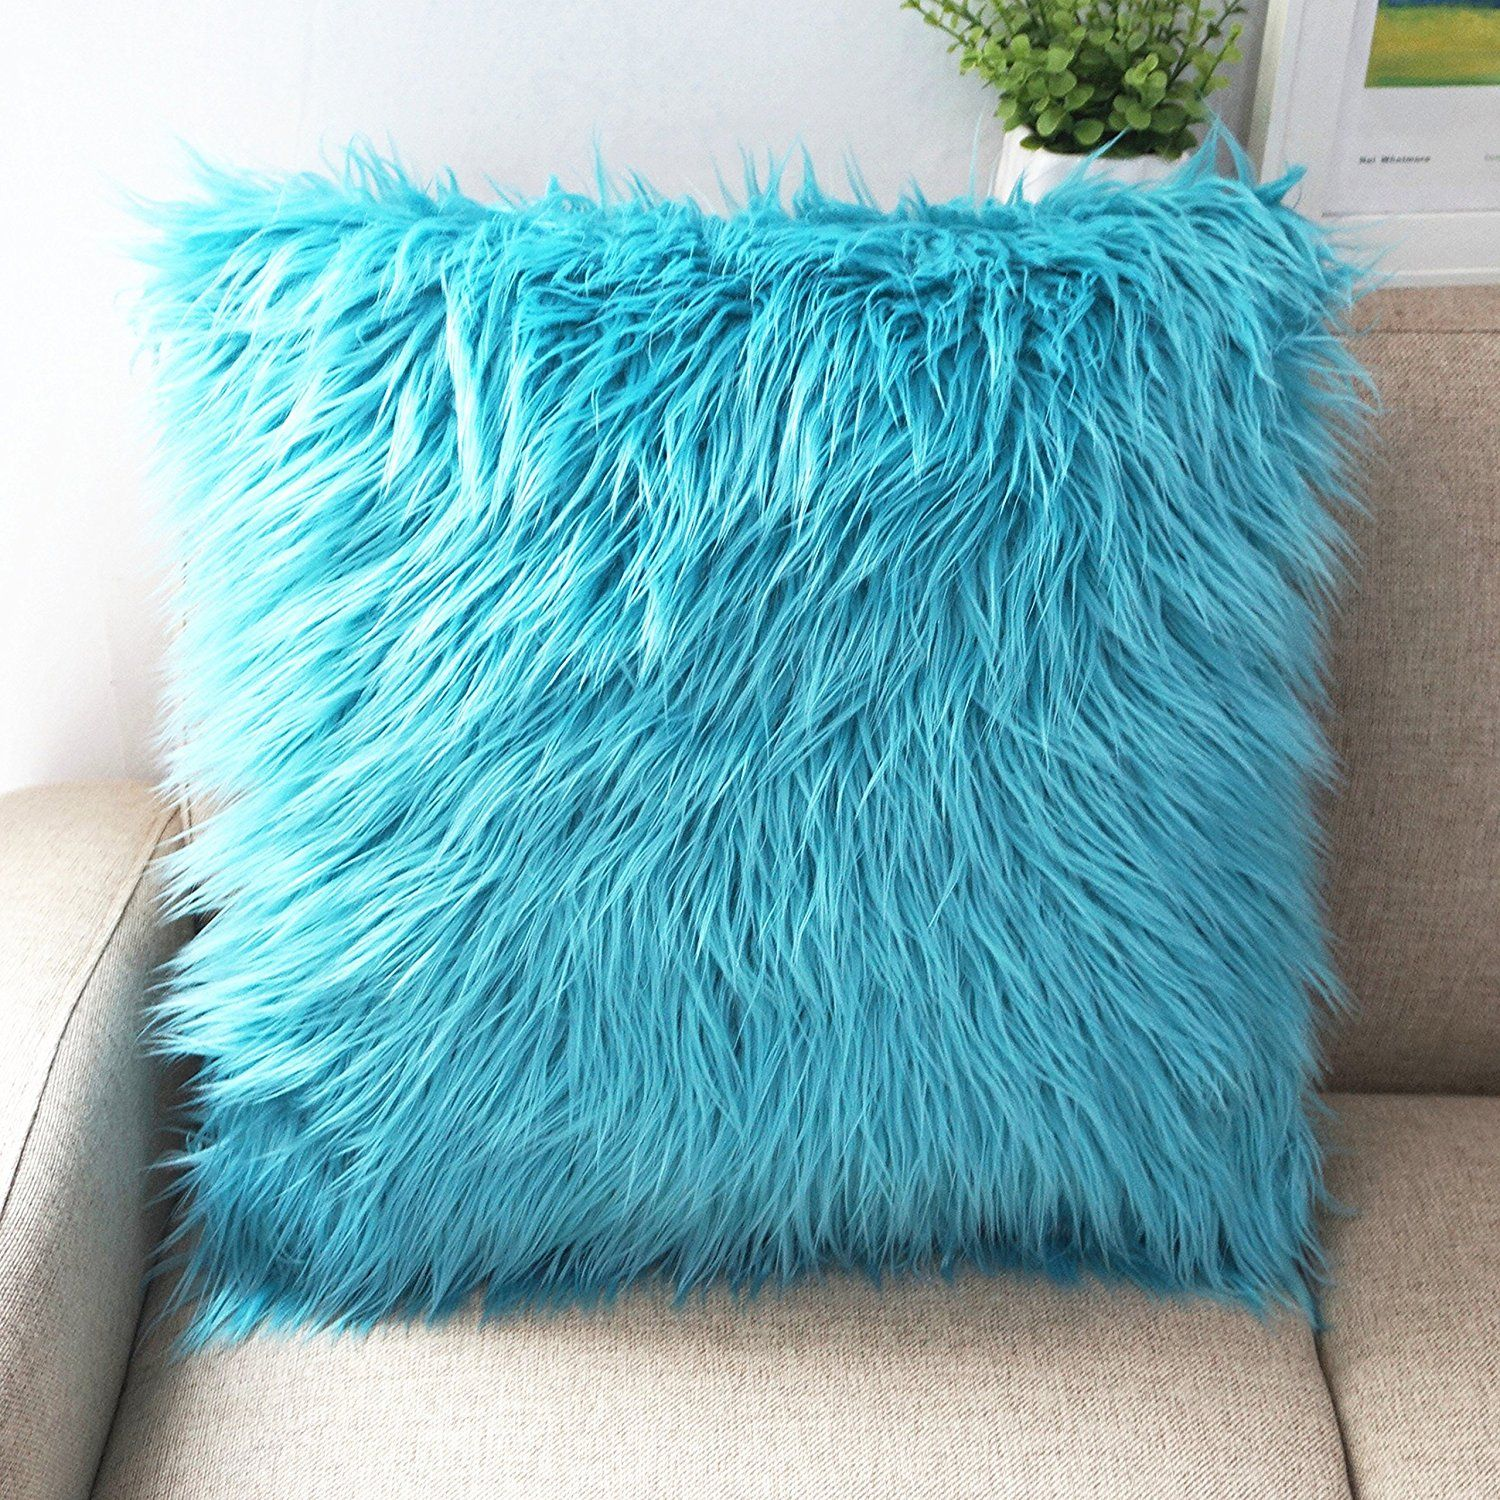 Amazon.com: Howarmer Deluxe Home Decorative Super Soft Plush Mongolian Faux  Fur Throw Pillow Cover 20X20 Inch, Aqua Blue: Home U0026 Kitchen